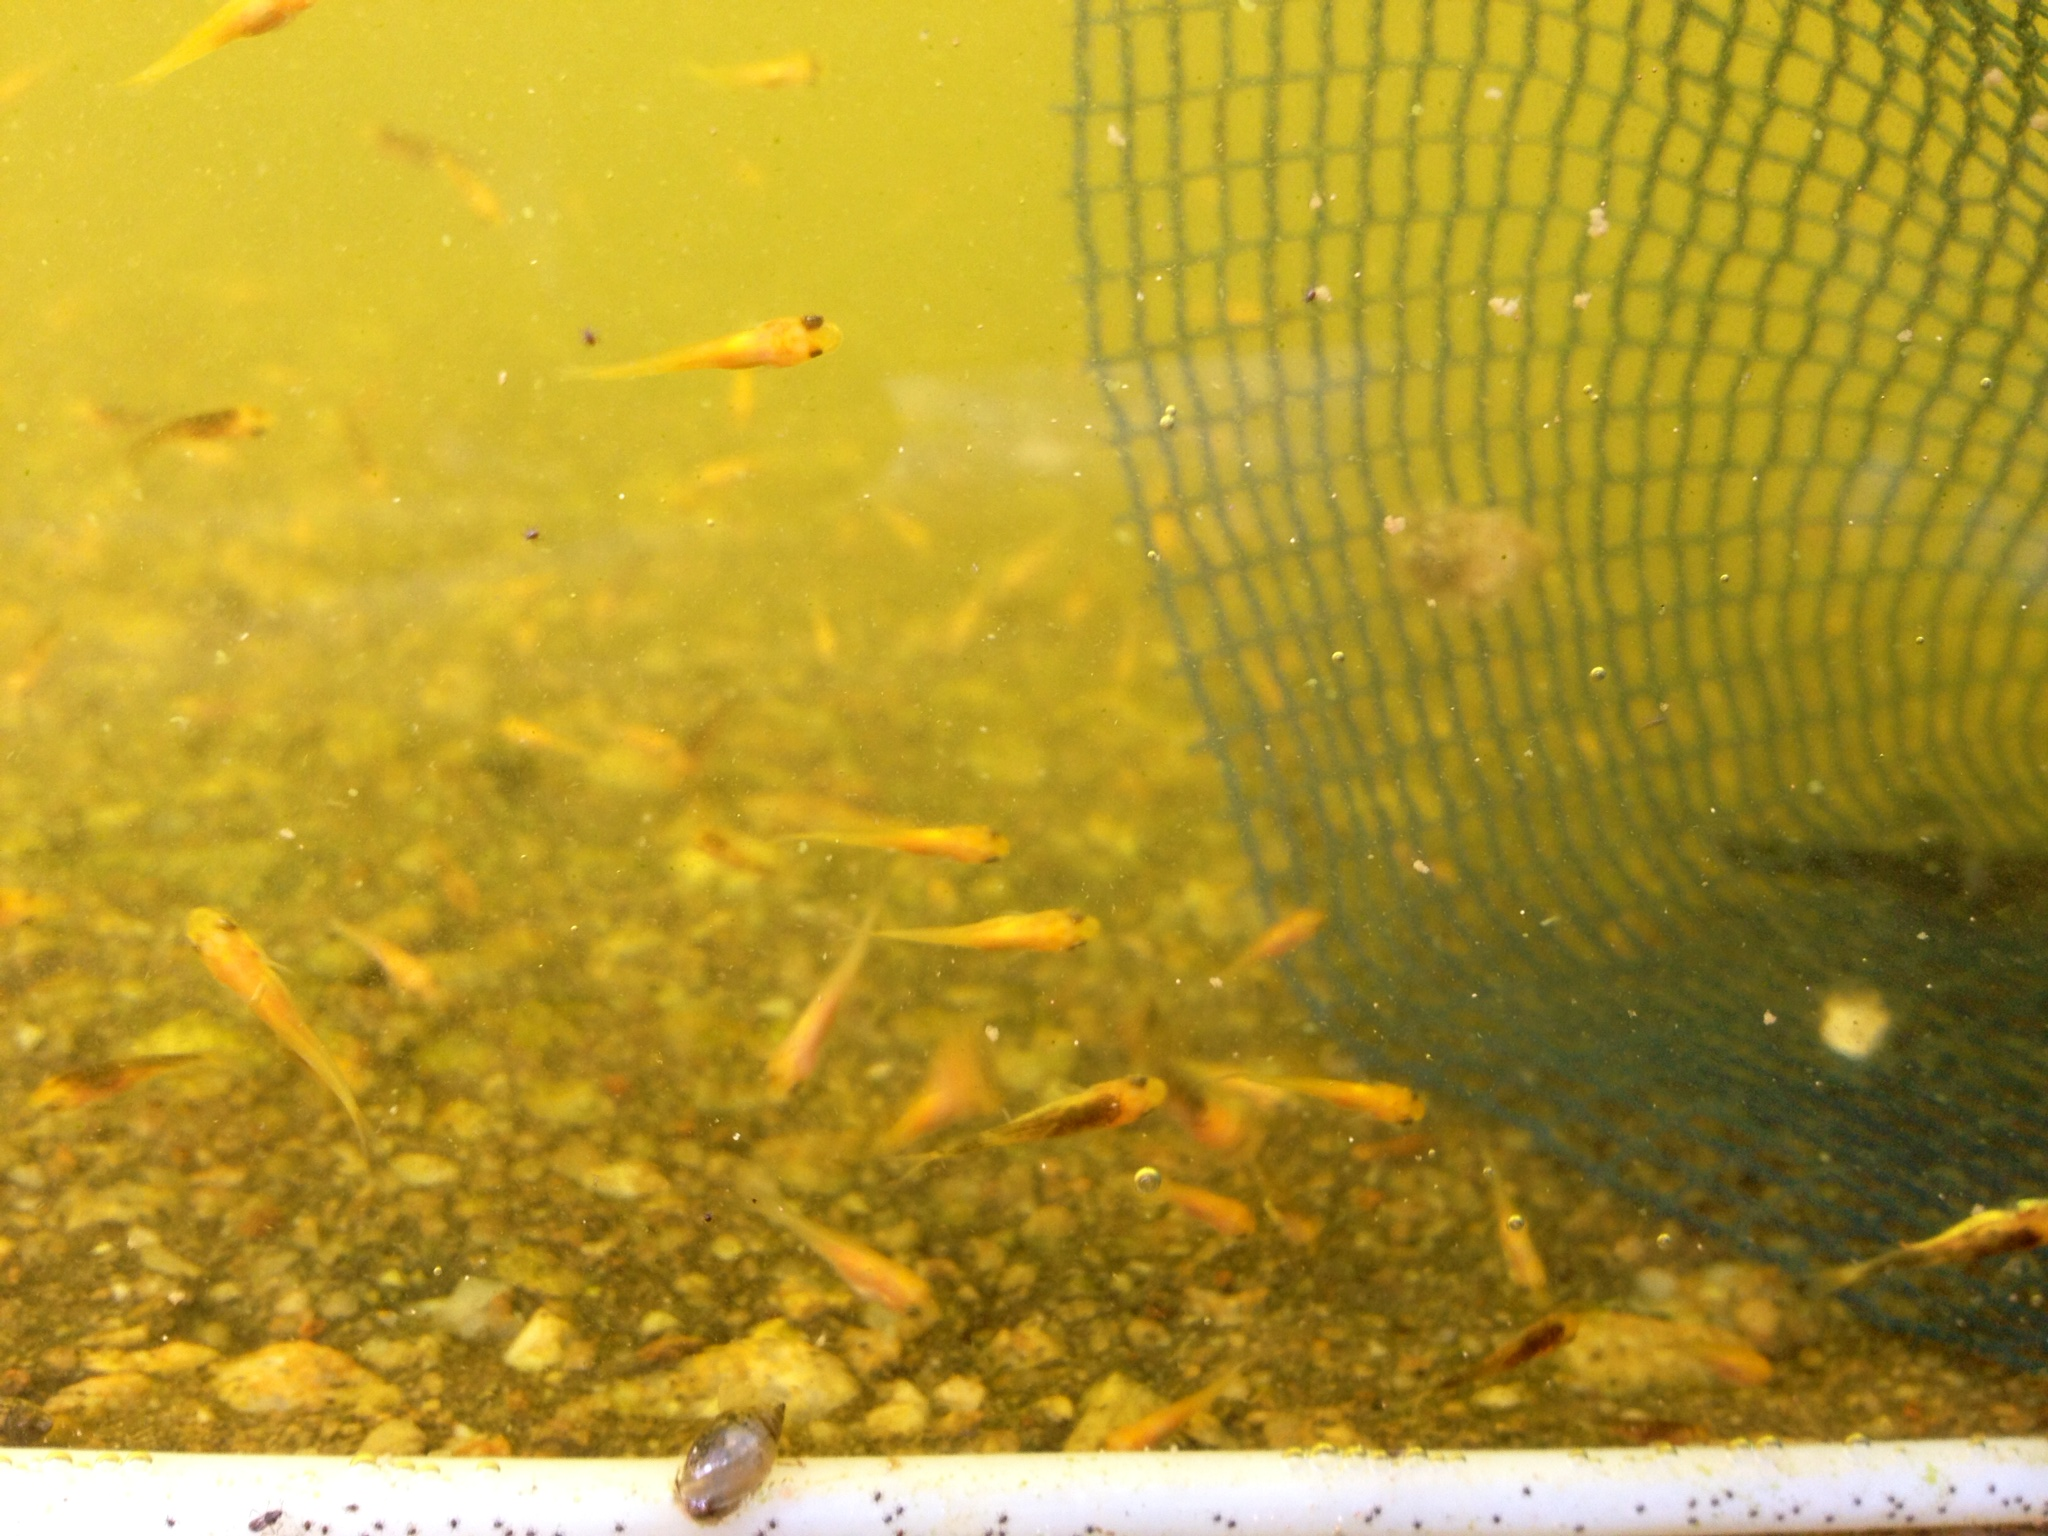 Marugen baby koi fries at 10 days old marugen koi farm for Baby japanese koi fish for sale